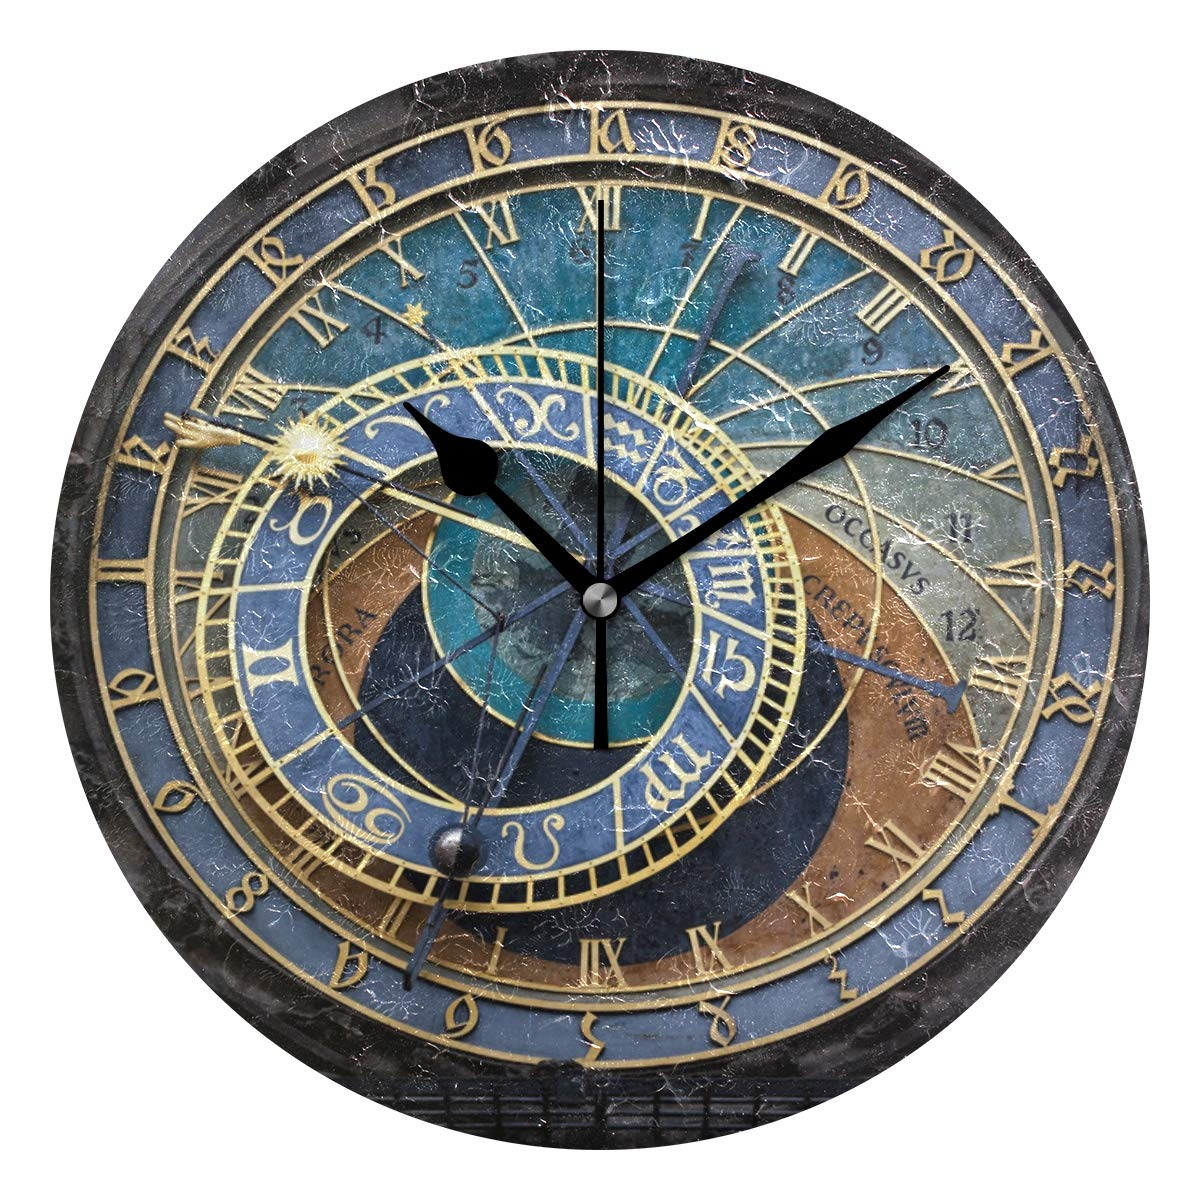 Amazon.com: LORVIES Prague Astronomical Clock Wall Clock Silent Non Ticking Acrylic Decorative 10 Inch Round Clock for Home Office School: Home & Kitchen